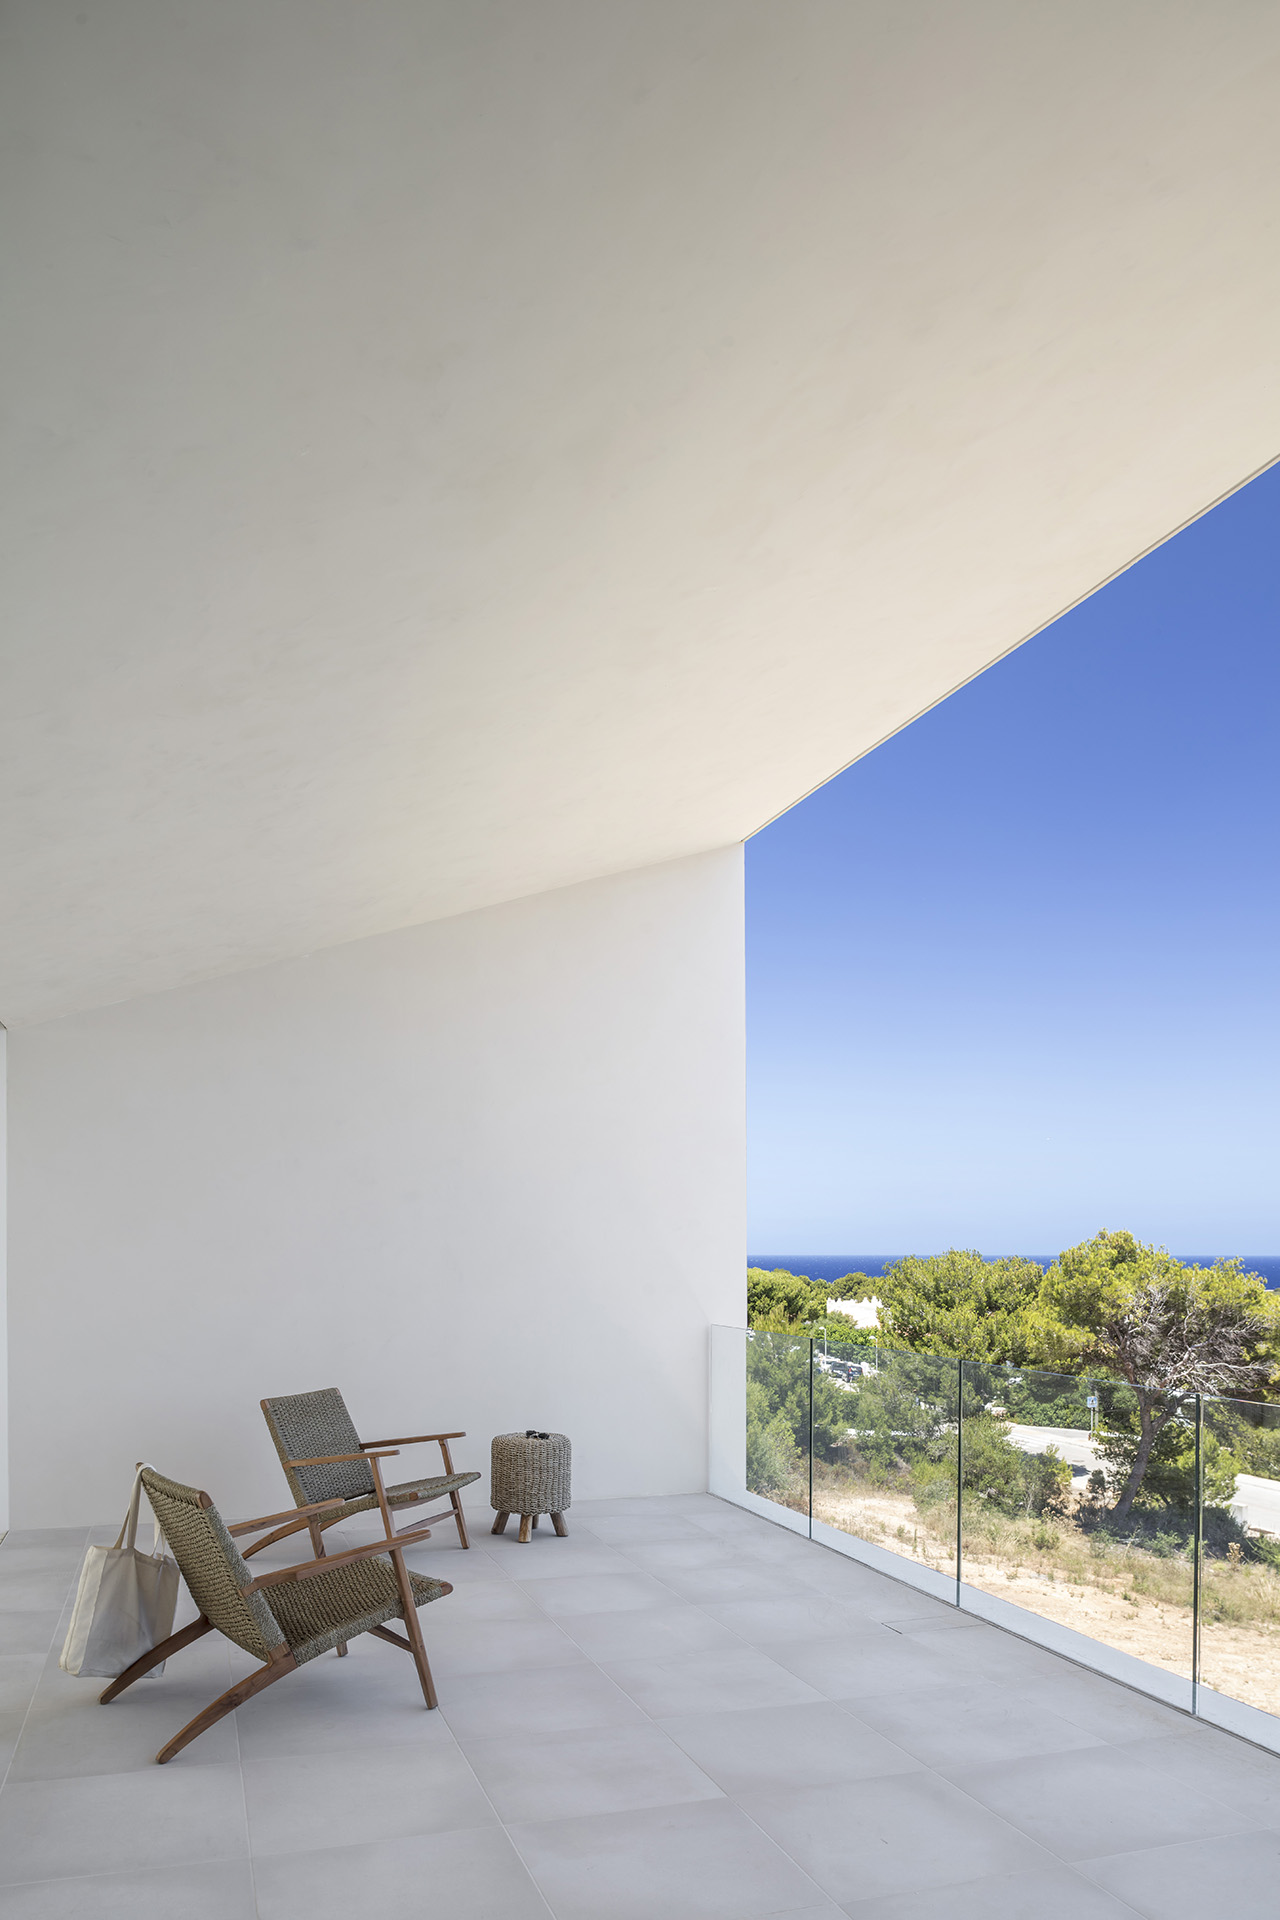 The inclined roof draws your eyes up towards the vast stretch of blue sky.